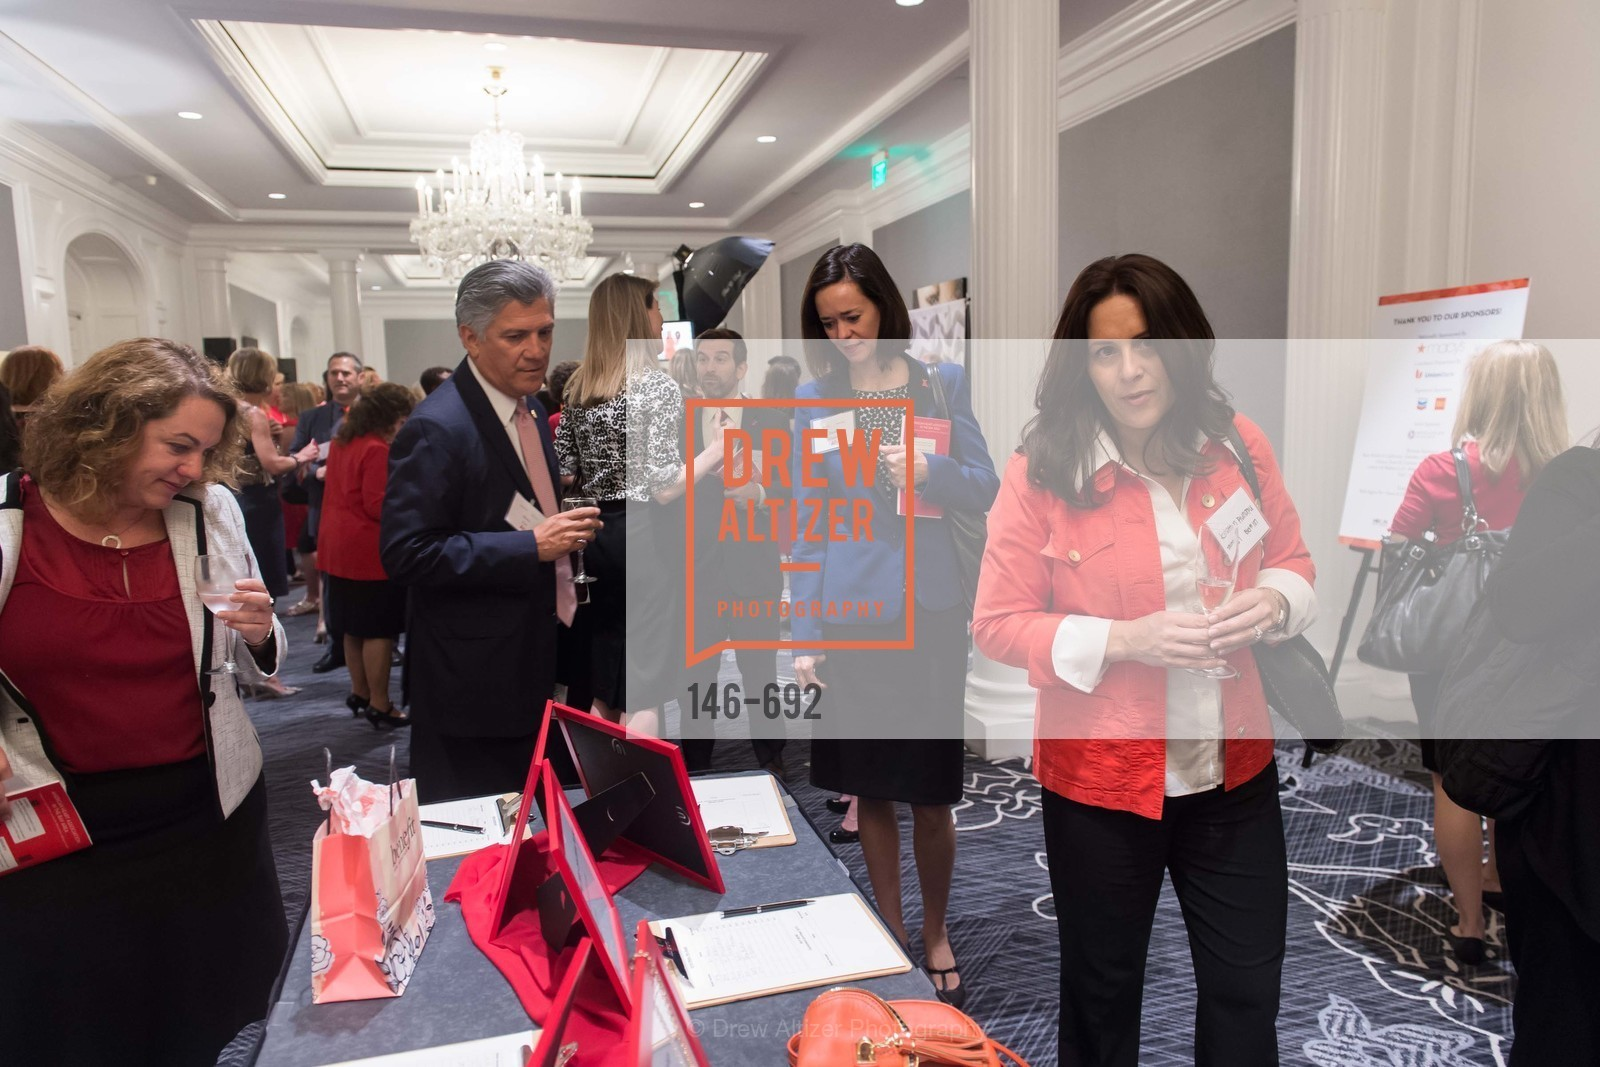 Mario Diaz, Karen Schwindt, Christine Aunate, 2015 GoRed for Women Luncheon, US, May 2nd, 2015,Drew Altizer, Drew Altizer Photography, full-service agency, private events, San Francisco photographer, photographer california